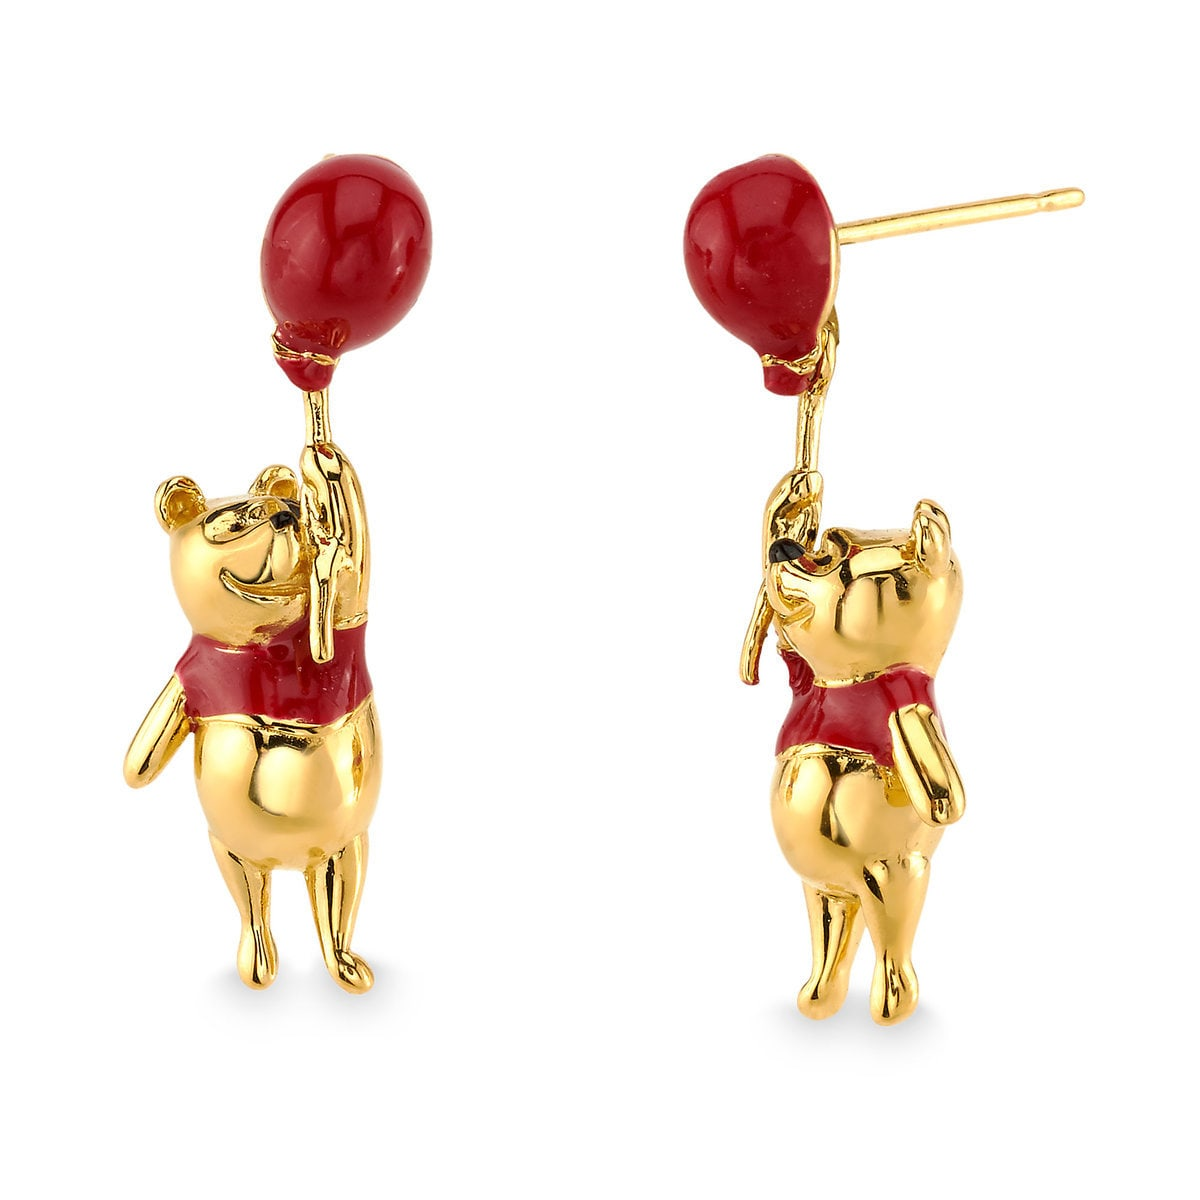 4fed538b9 Product Image of Winnie the Pooh Earrings by RockLove - Christopher Robin #  1